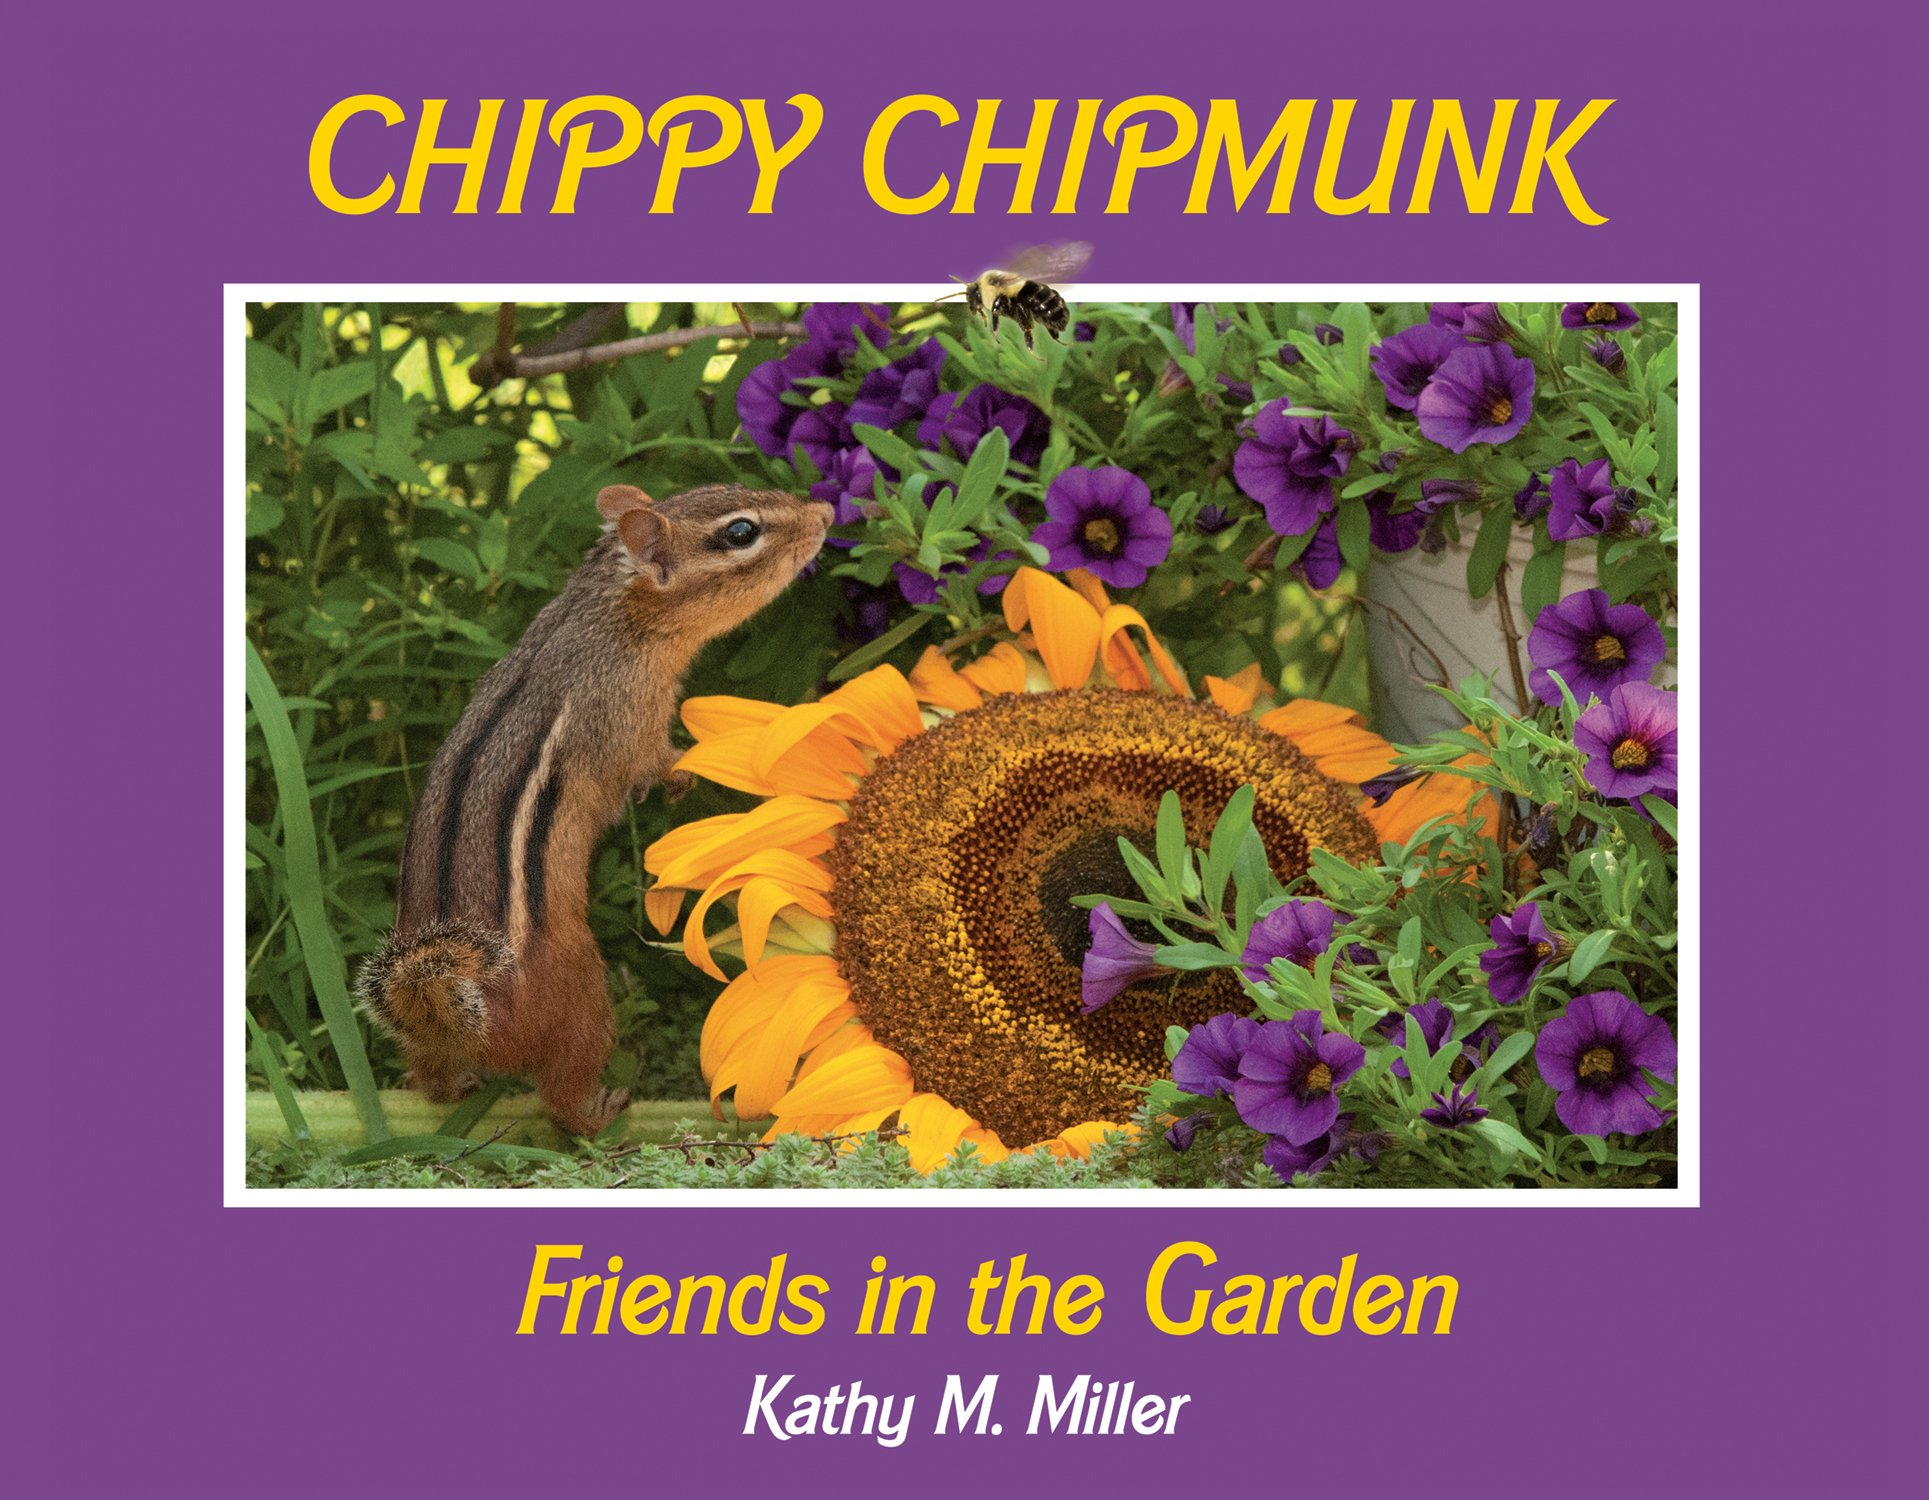 Kathy M. Miller: Who is Chippy Chipmunk and What is he learning from his Friends in the Garden?